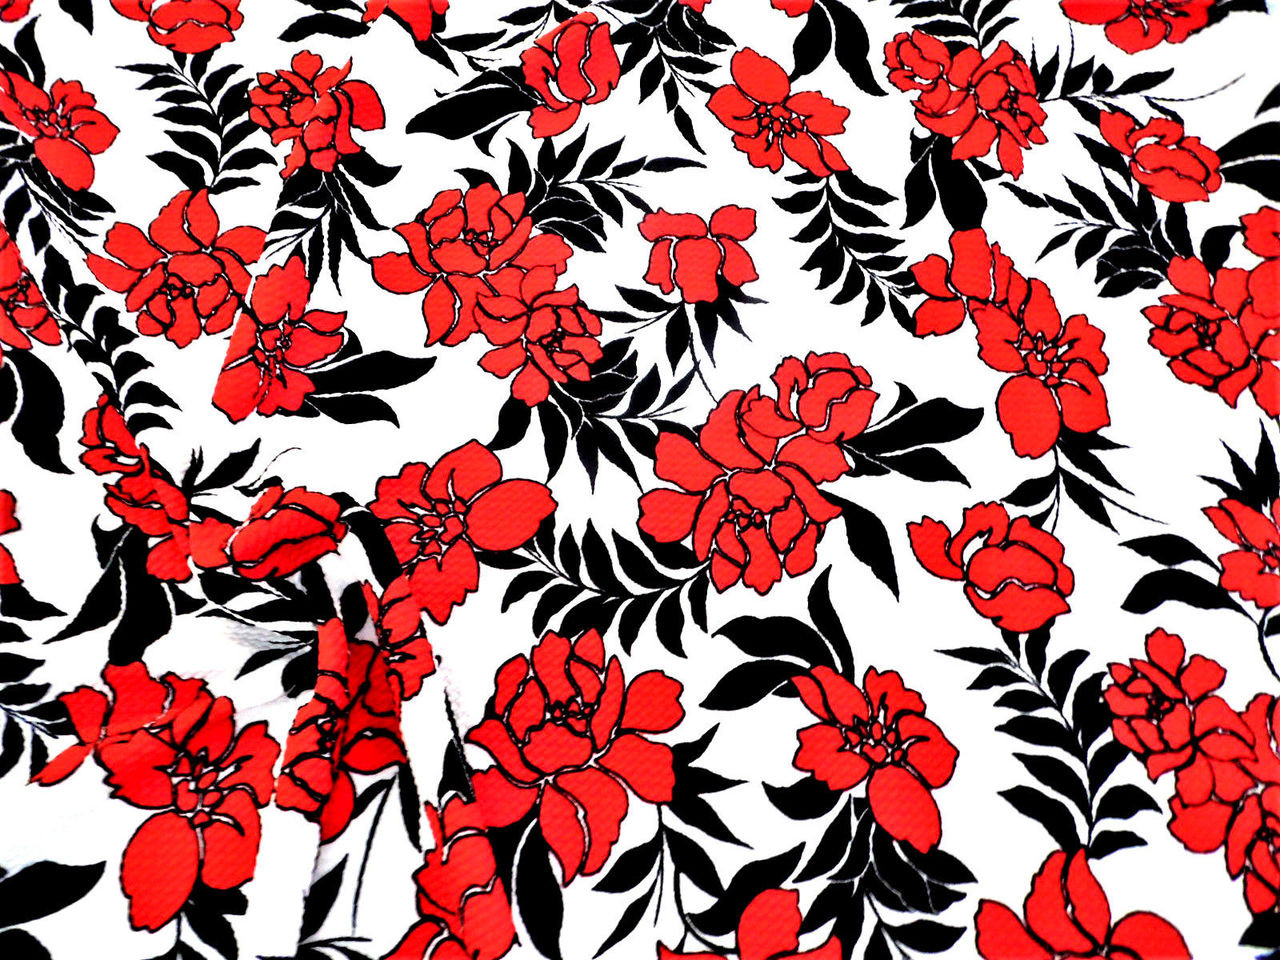 122bf94175 Bullet Printed Liverpool Textured Fabric 4 way Stretch Scuba Floral Red  Black K501